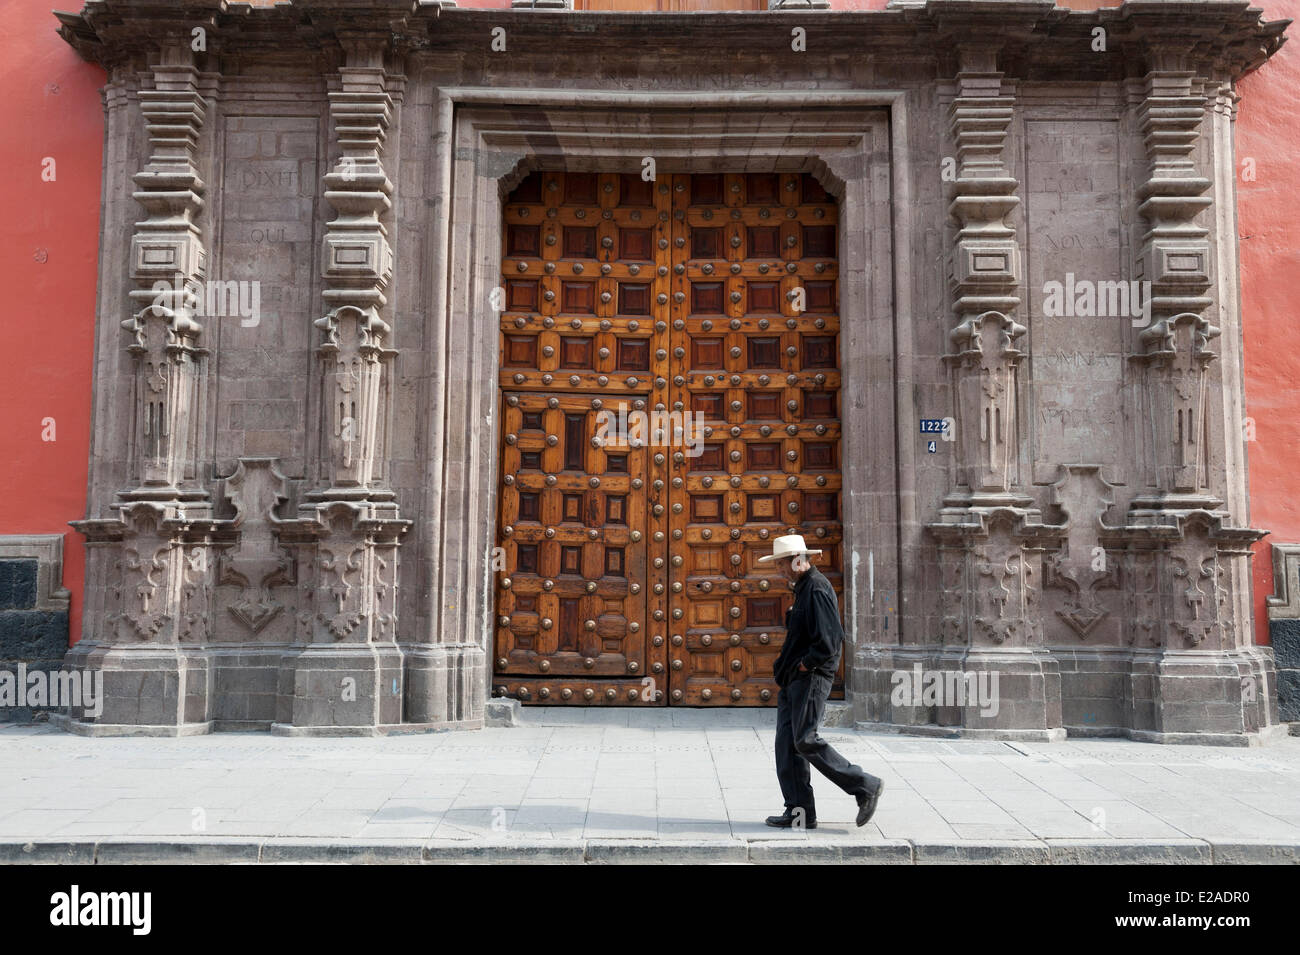 Mexico, Federal District, Mexico city, historical center listed as World Heritage by UNESCO - Stock Image